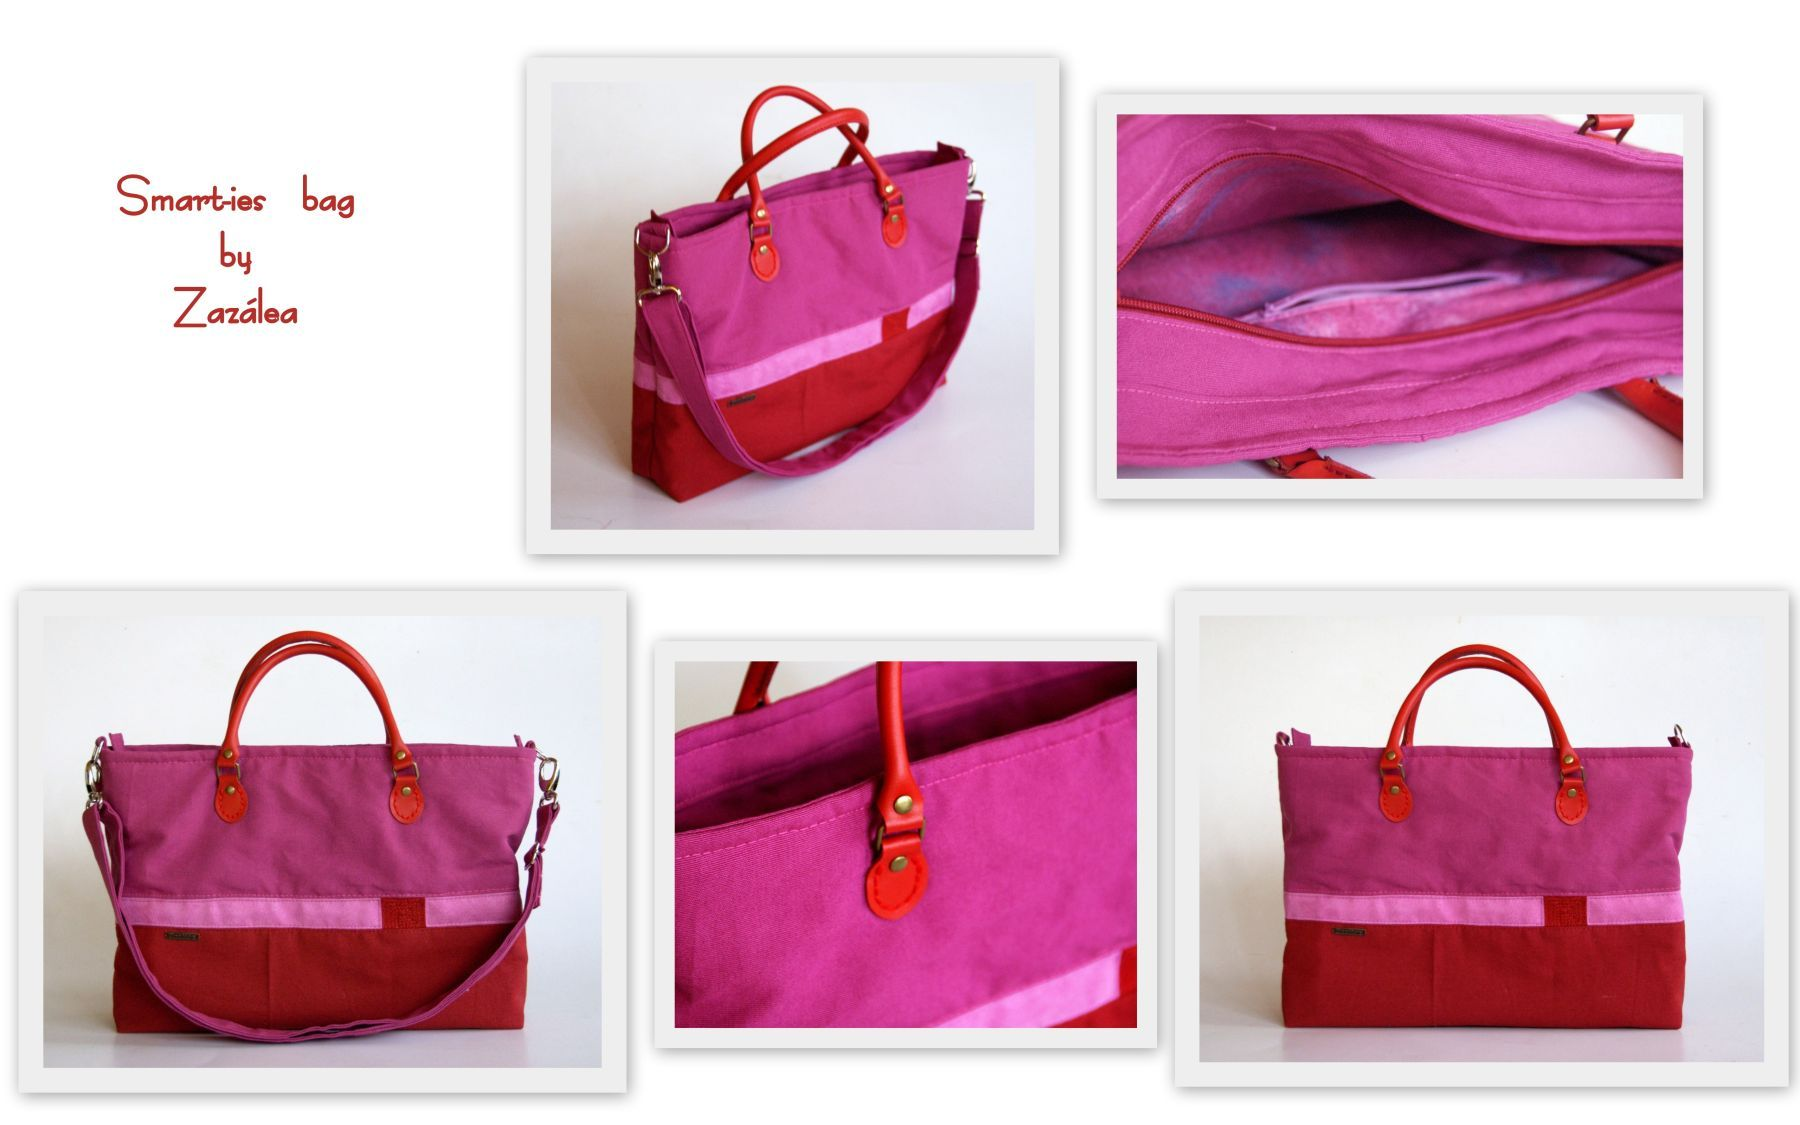 Smart Ies Bag In Pink And Red With Handle